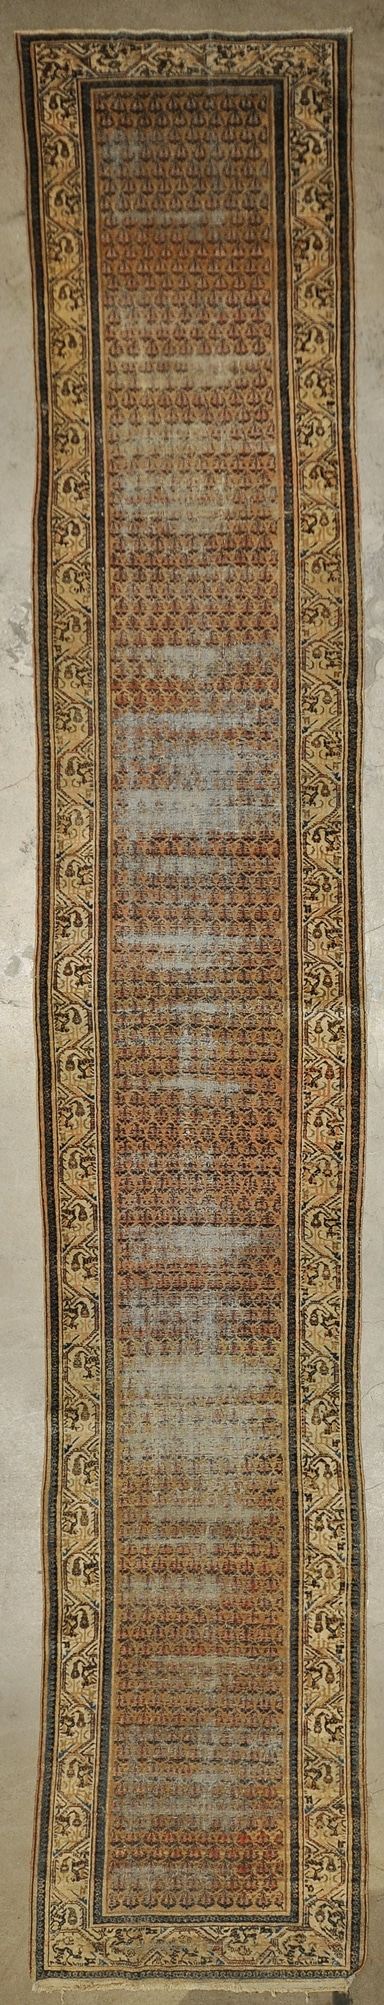 Antique Paisley Runner rugs and more oriental carpet 43901-